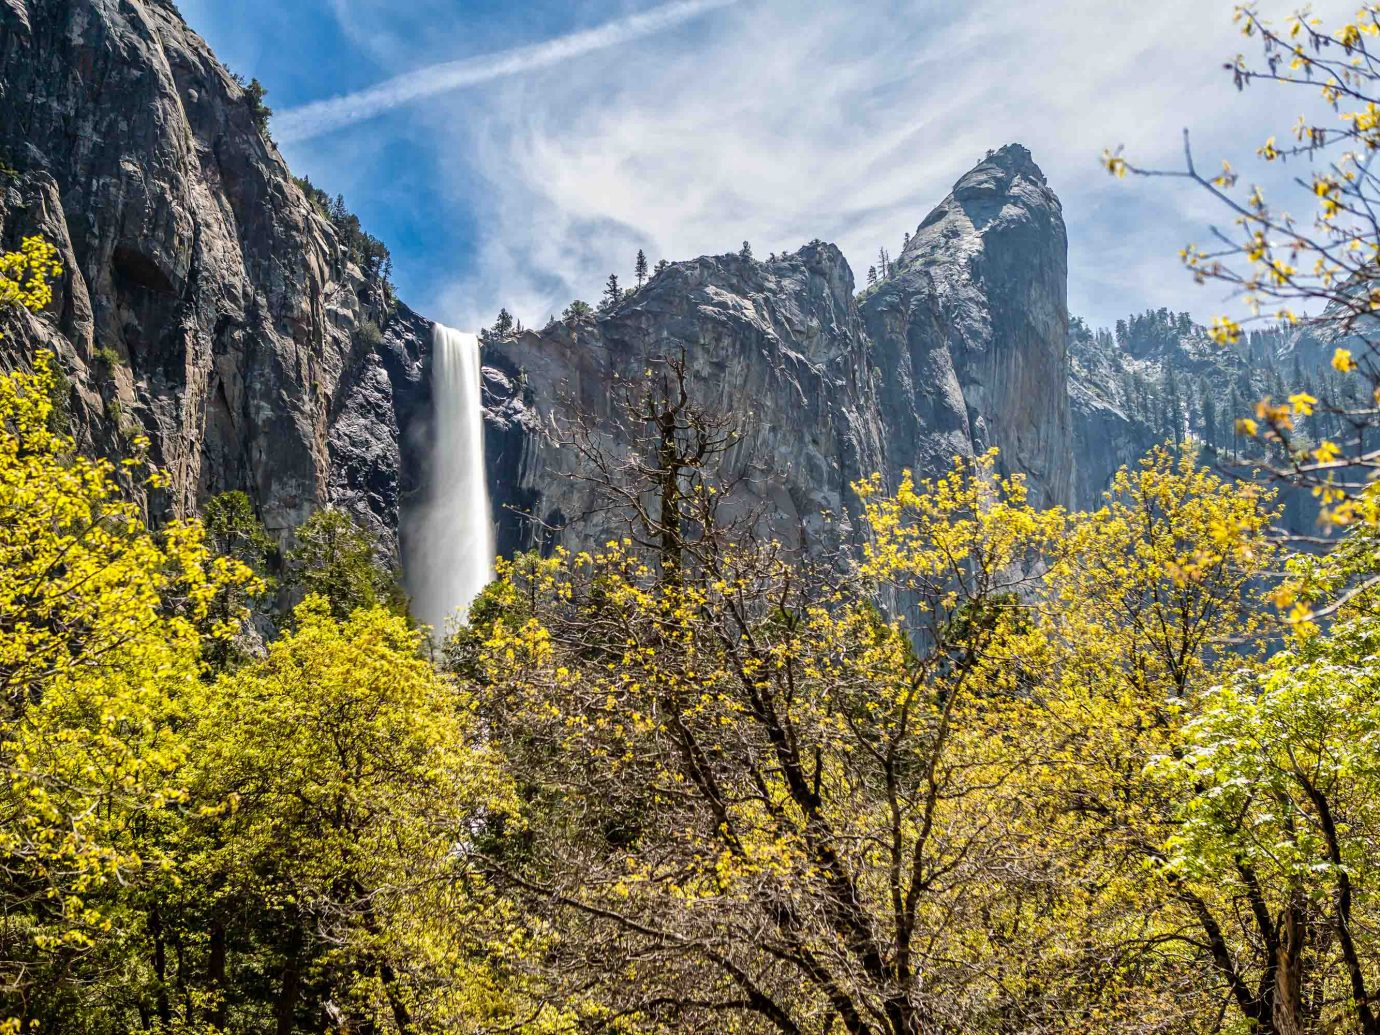 Bridalveil Falls in Yosemite National park